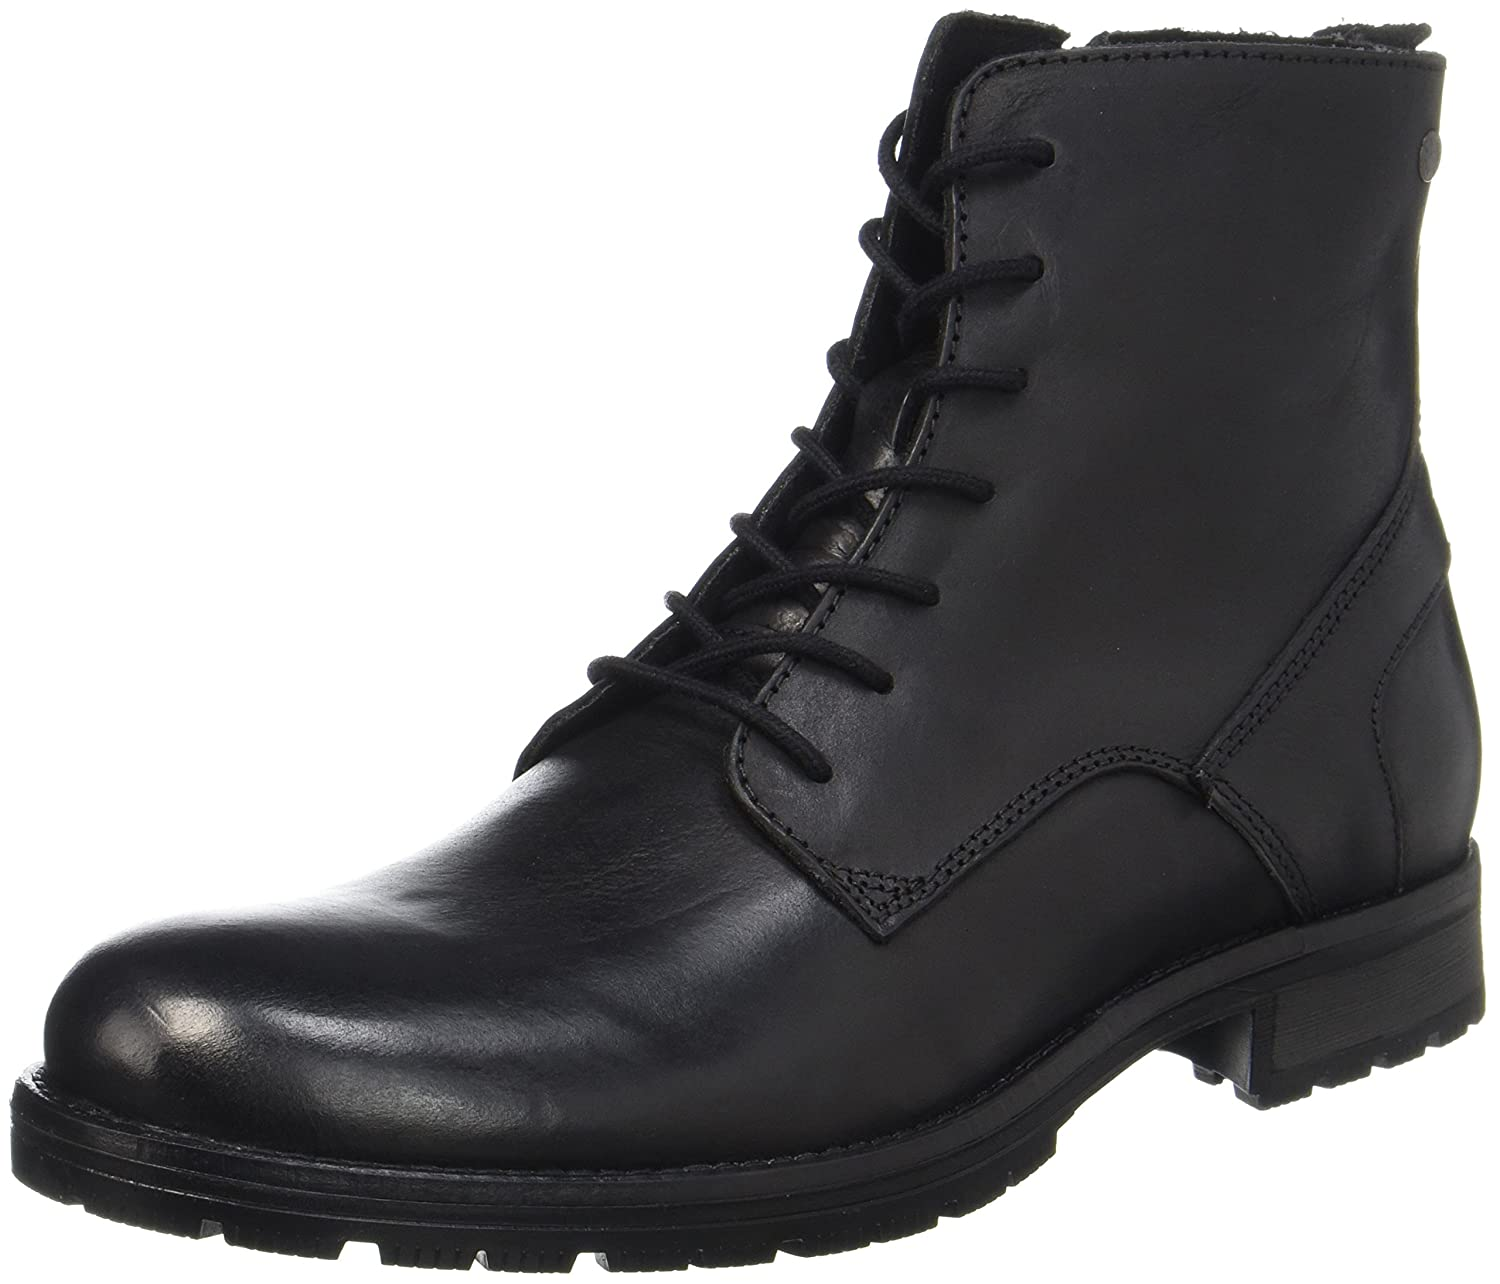 TALLA 42 EU. Jack & Jones Jfworca Leather Black, Botas Clasicas para Hombre